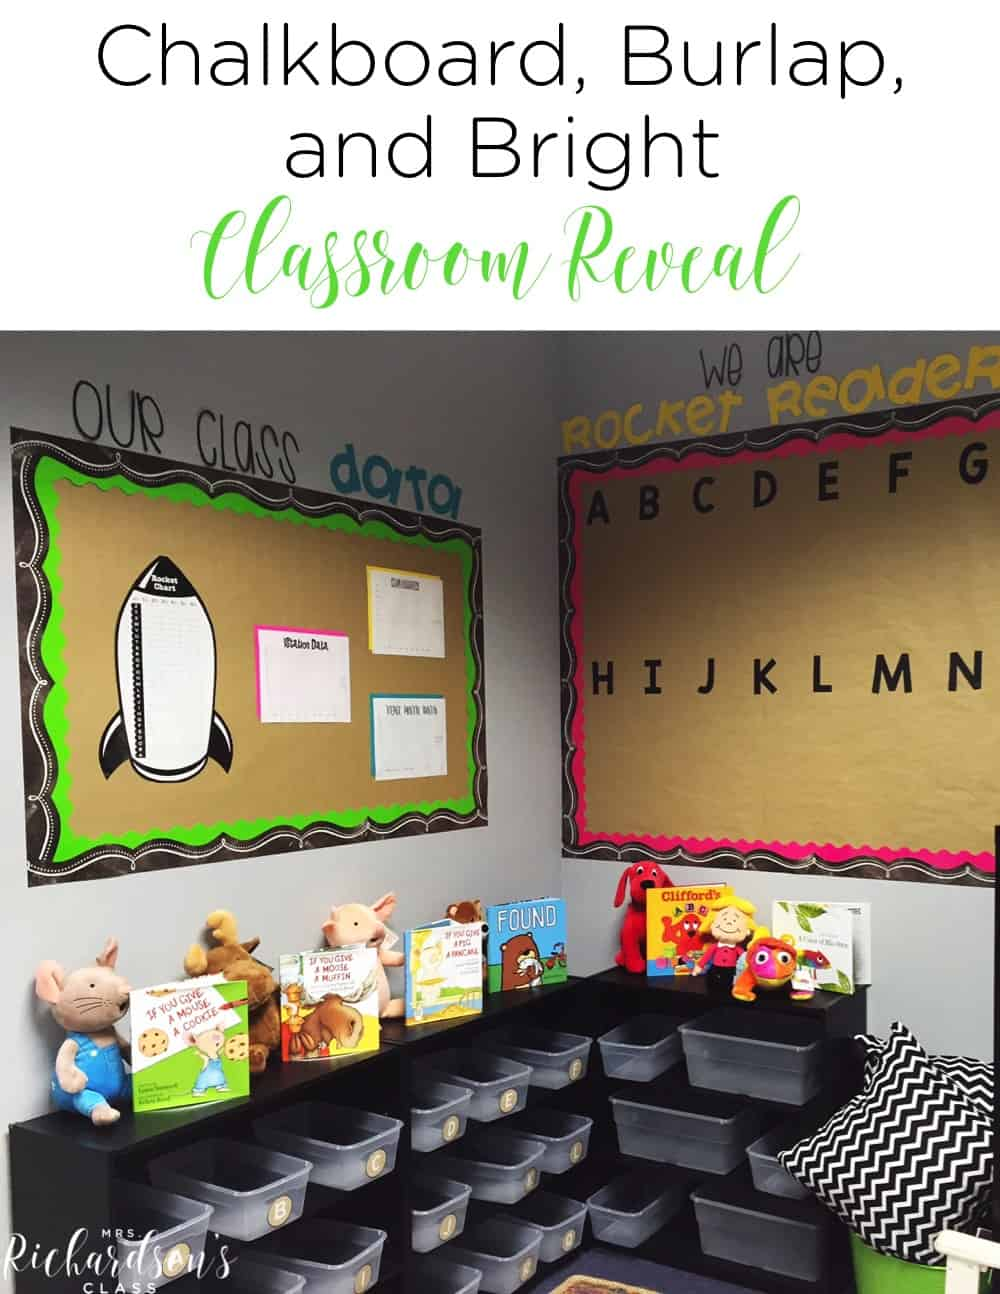 Chalkboard, burlap, and bright classroom decor that is simple and affordable! I love how inviting this learning environment is, too! Get a quick tour of everything from the teacher desk to bulletin boards to easy organization tips! #classroomdecor #classroomideas #classroomorganization #kindergaten #firstgrade #preschool